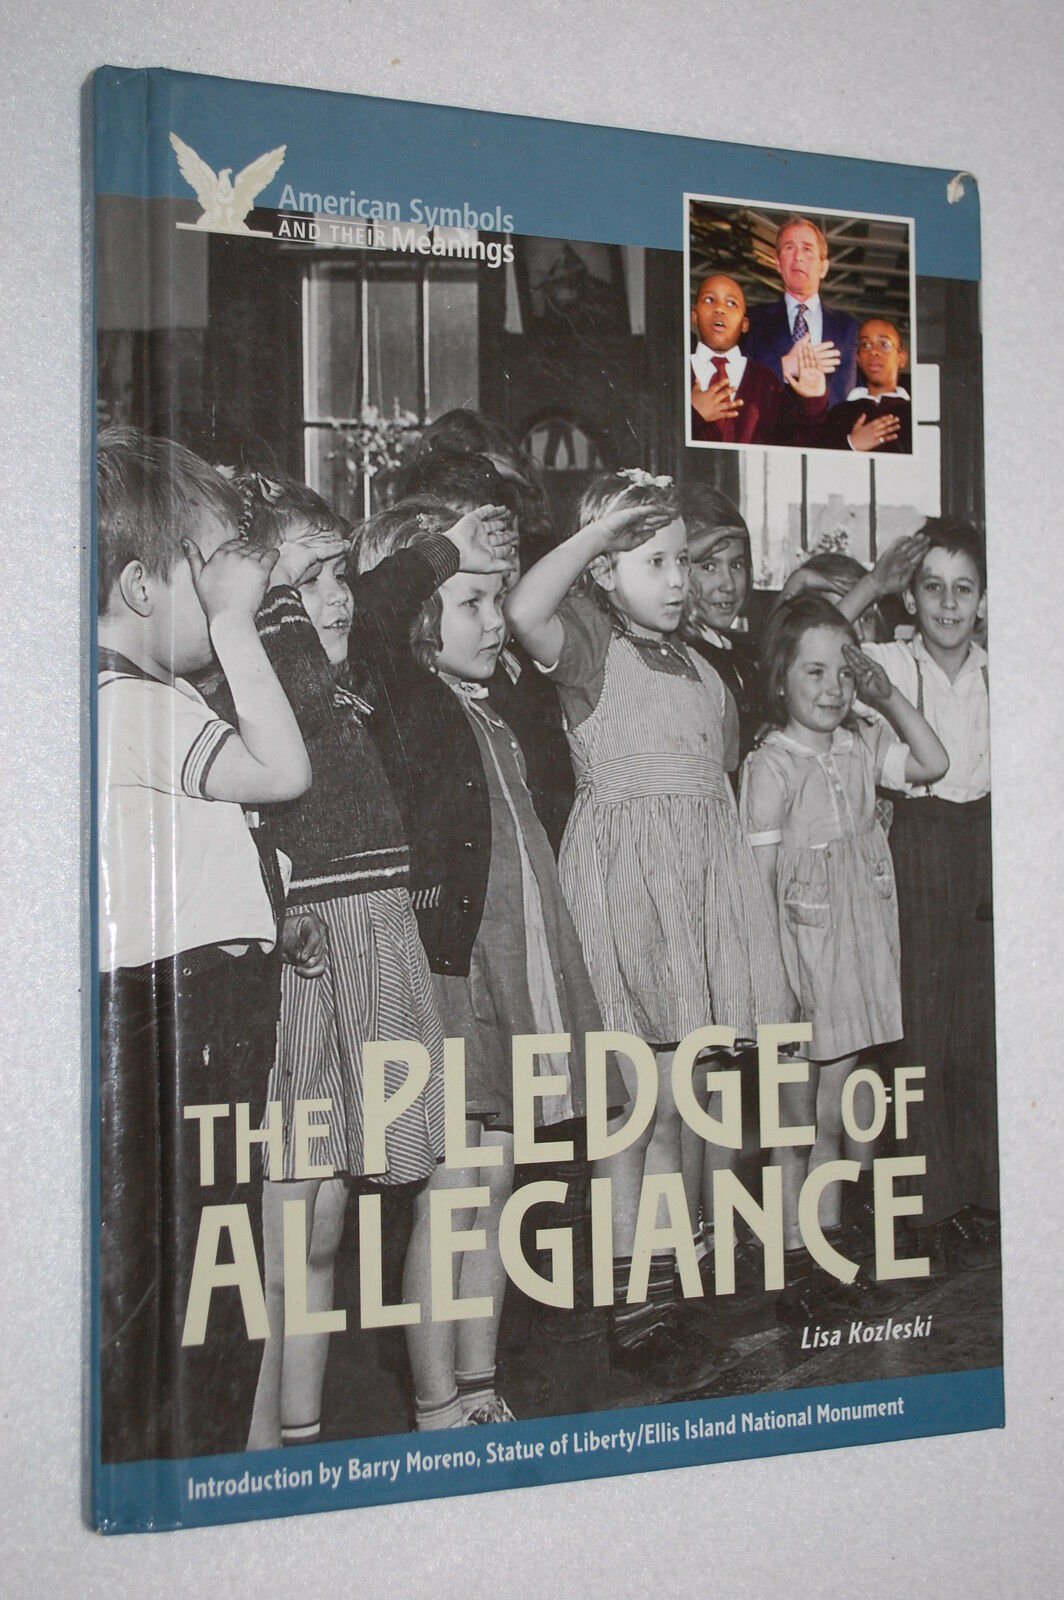 American Symbols And Their Meanings The Pledge Of Allegiance By